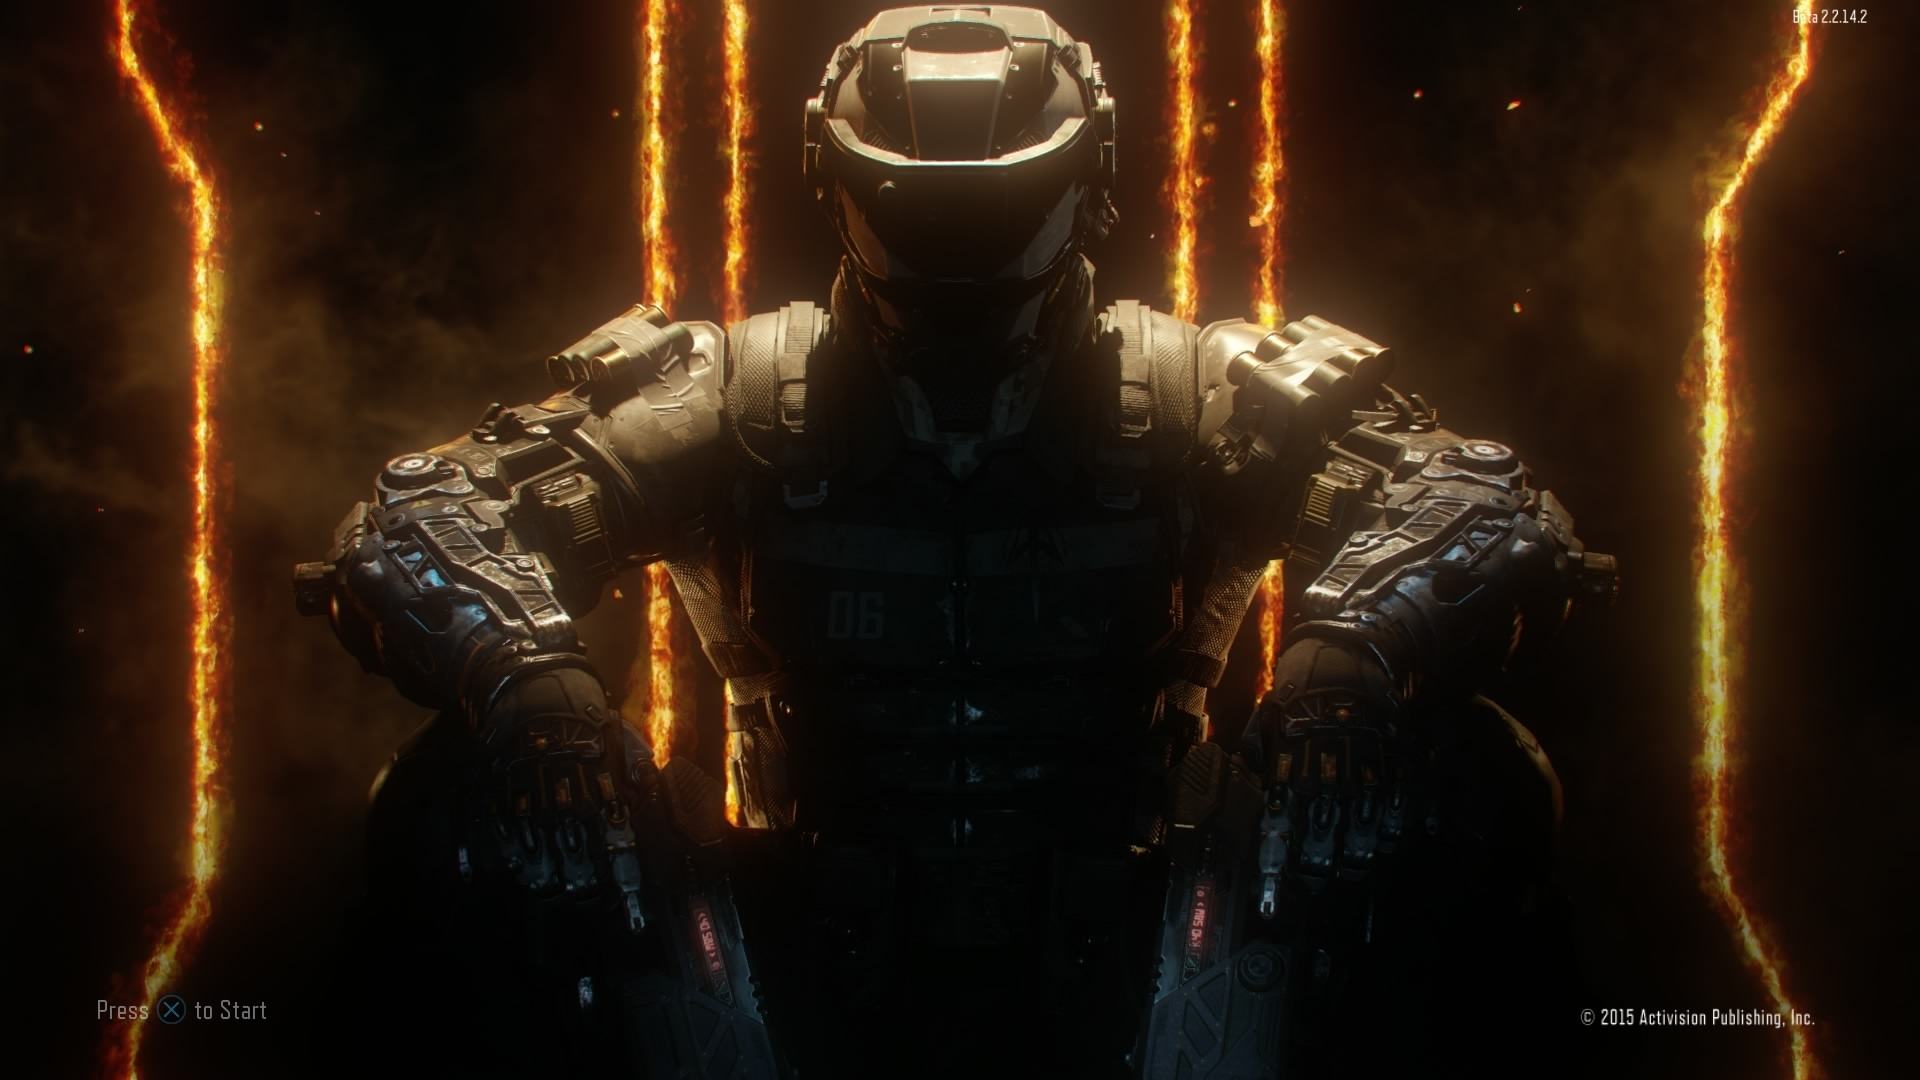 call of duty black ops 3 - xboxone - jeux torrents